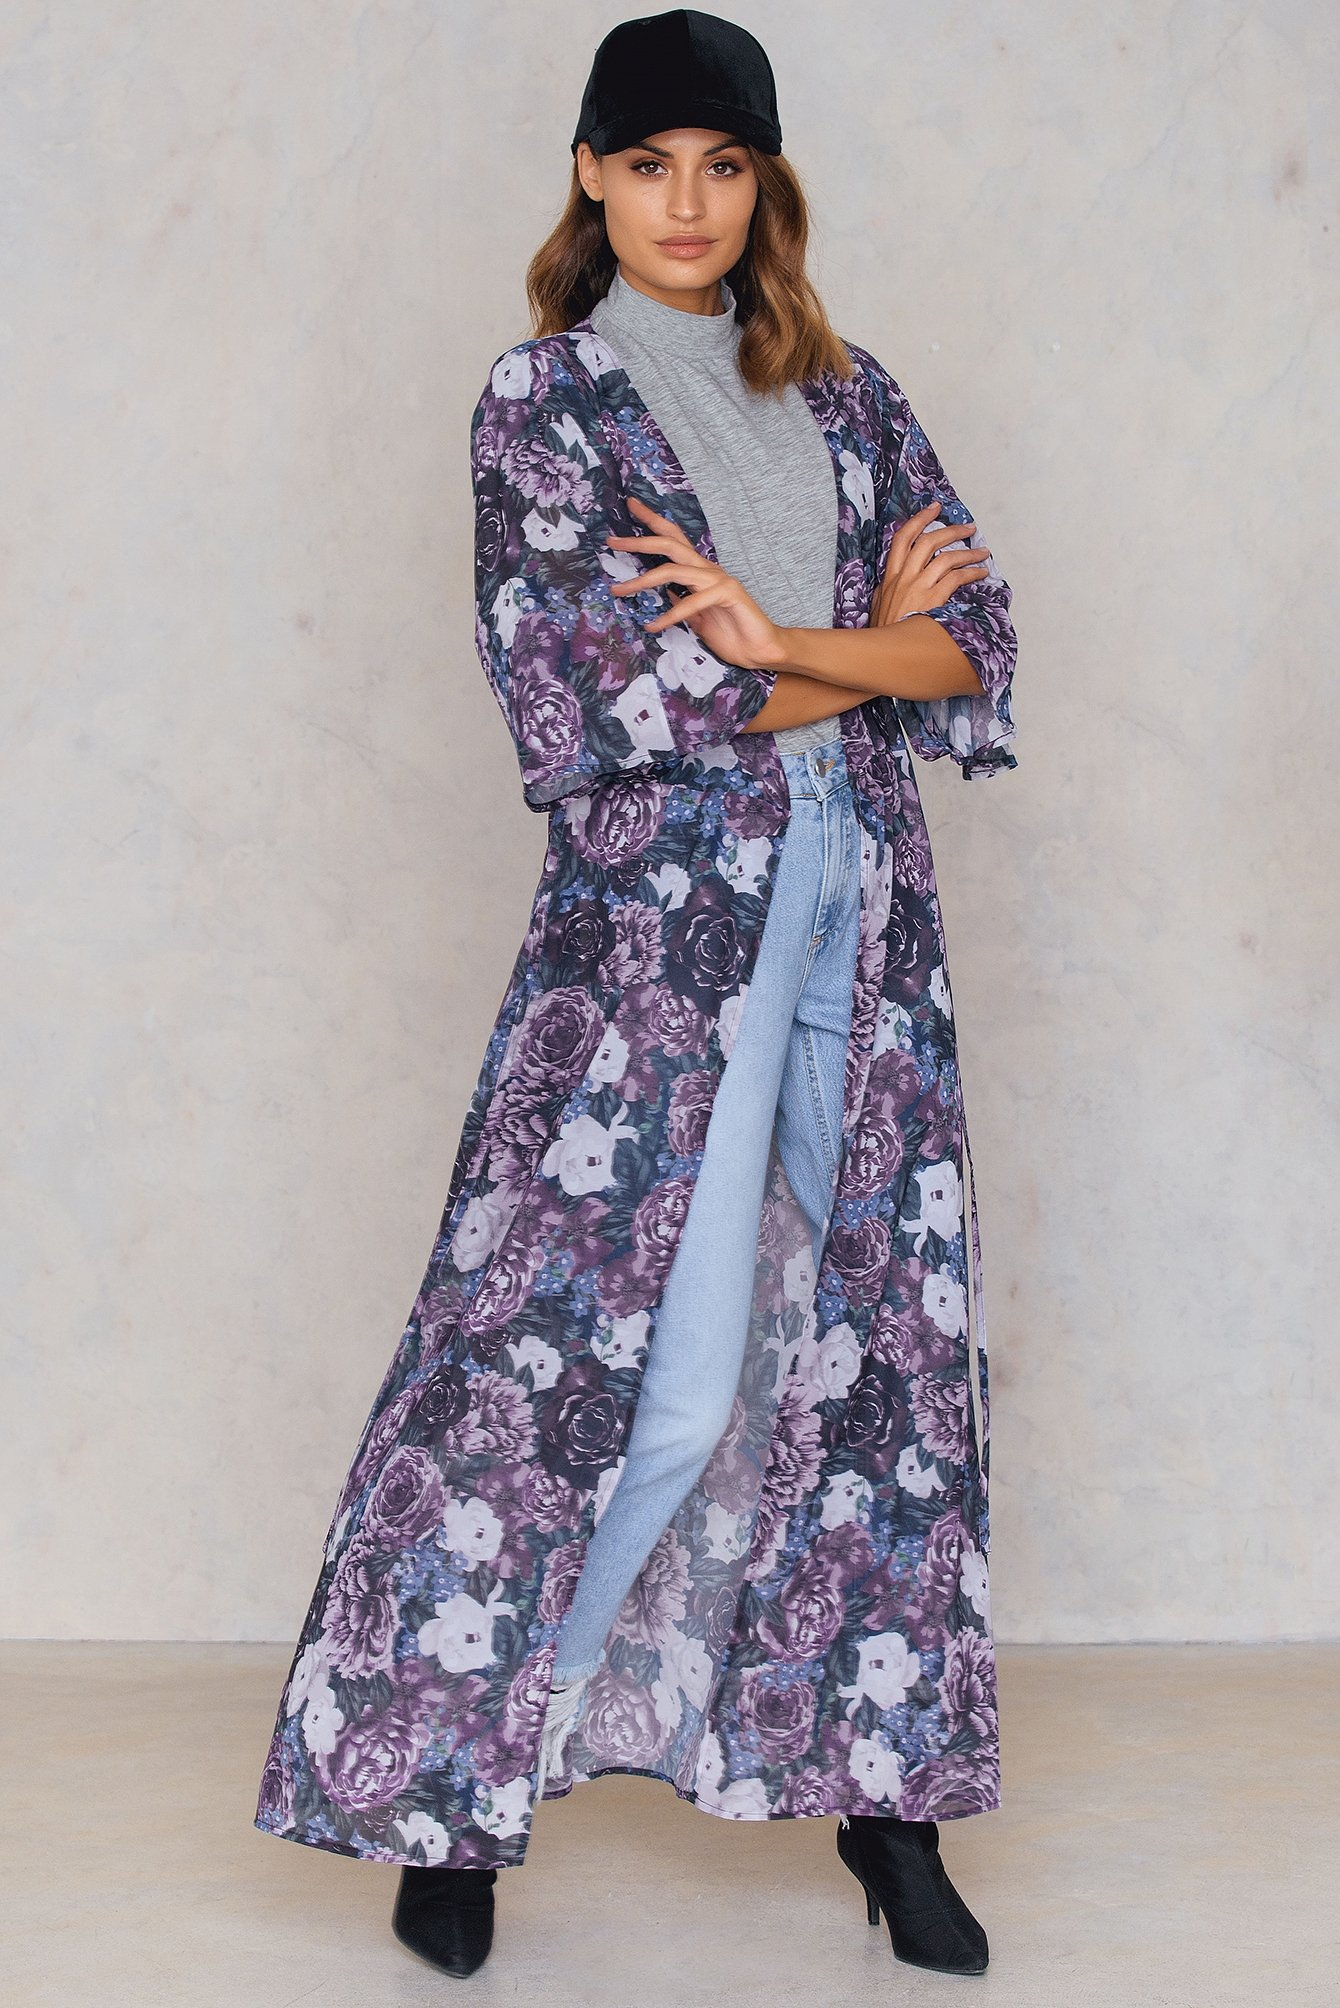 NA-KD Trend Chiffon Coat Dress Purple, Multicolor